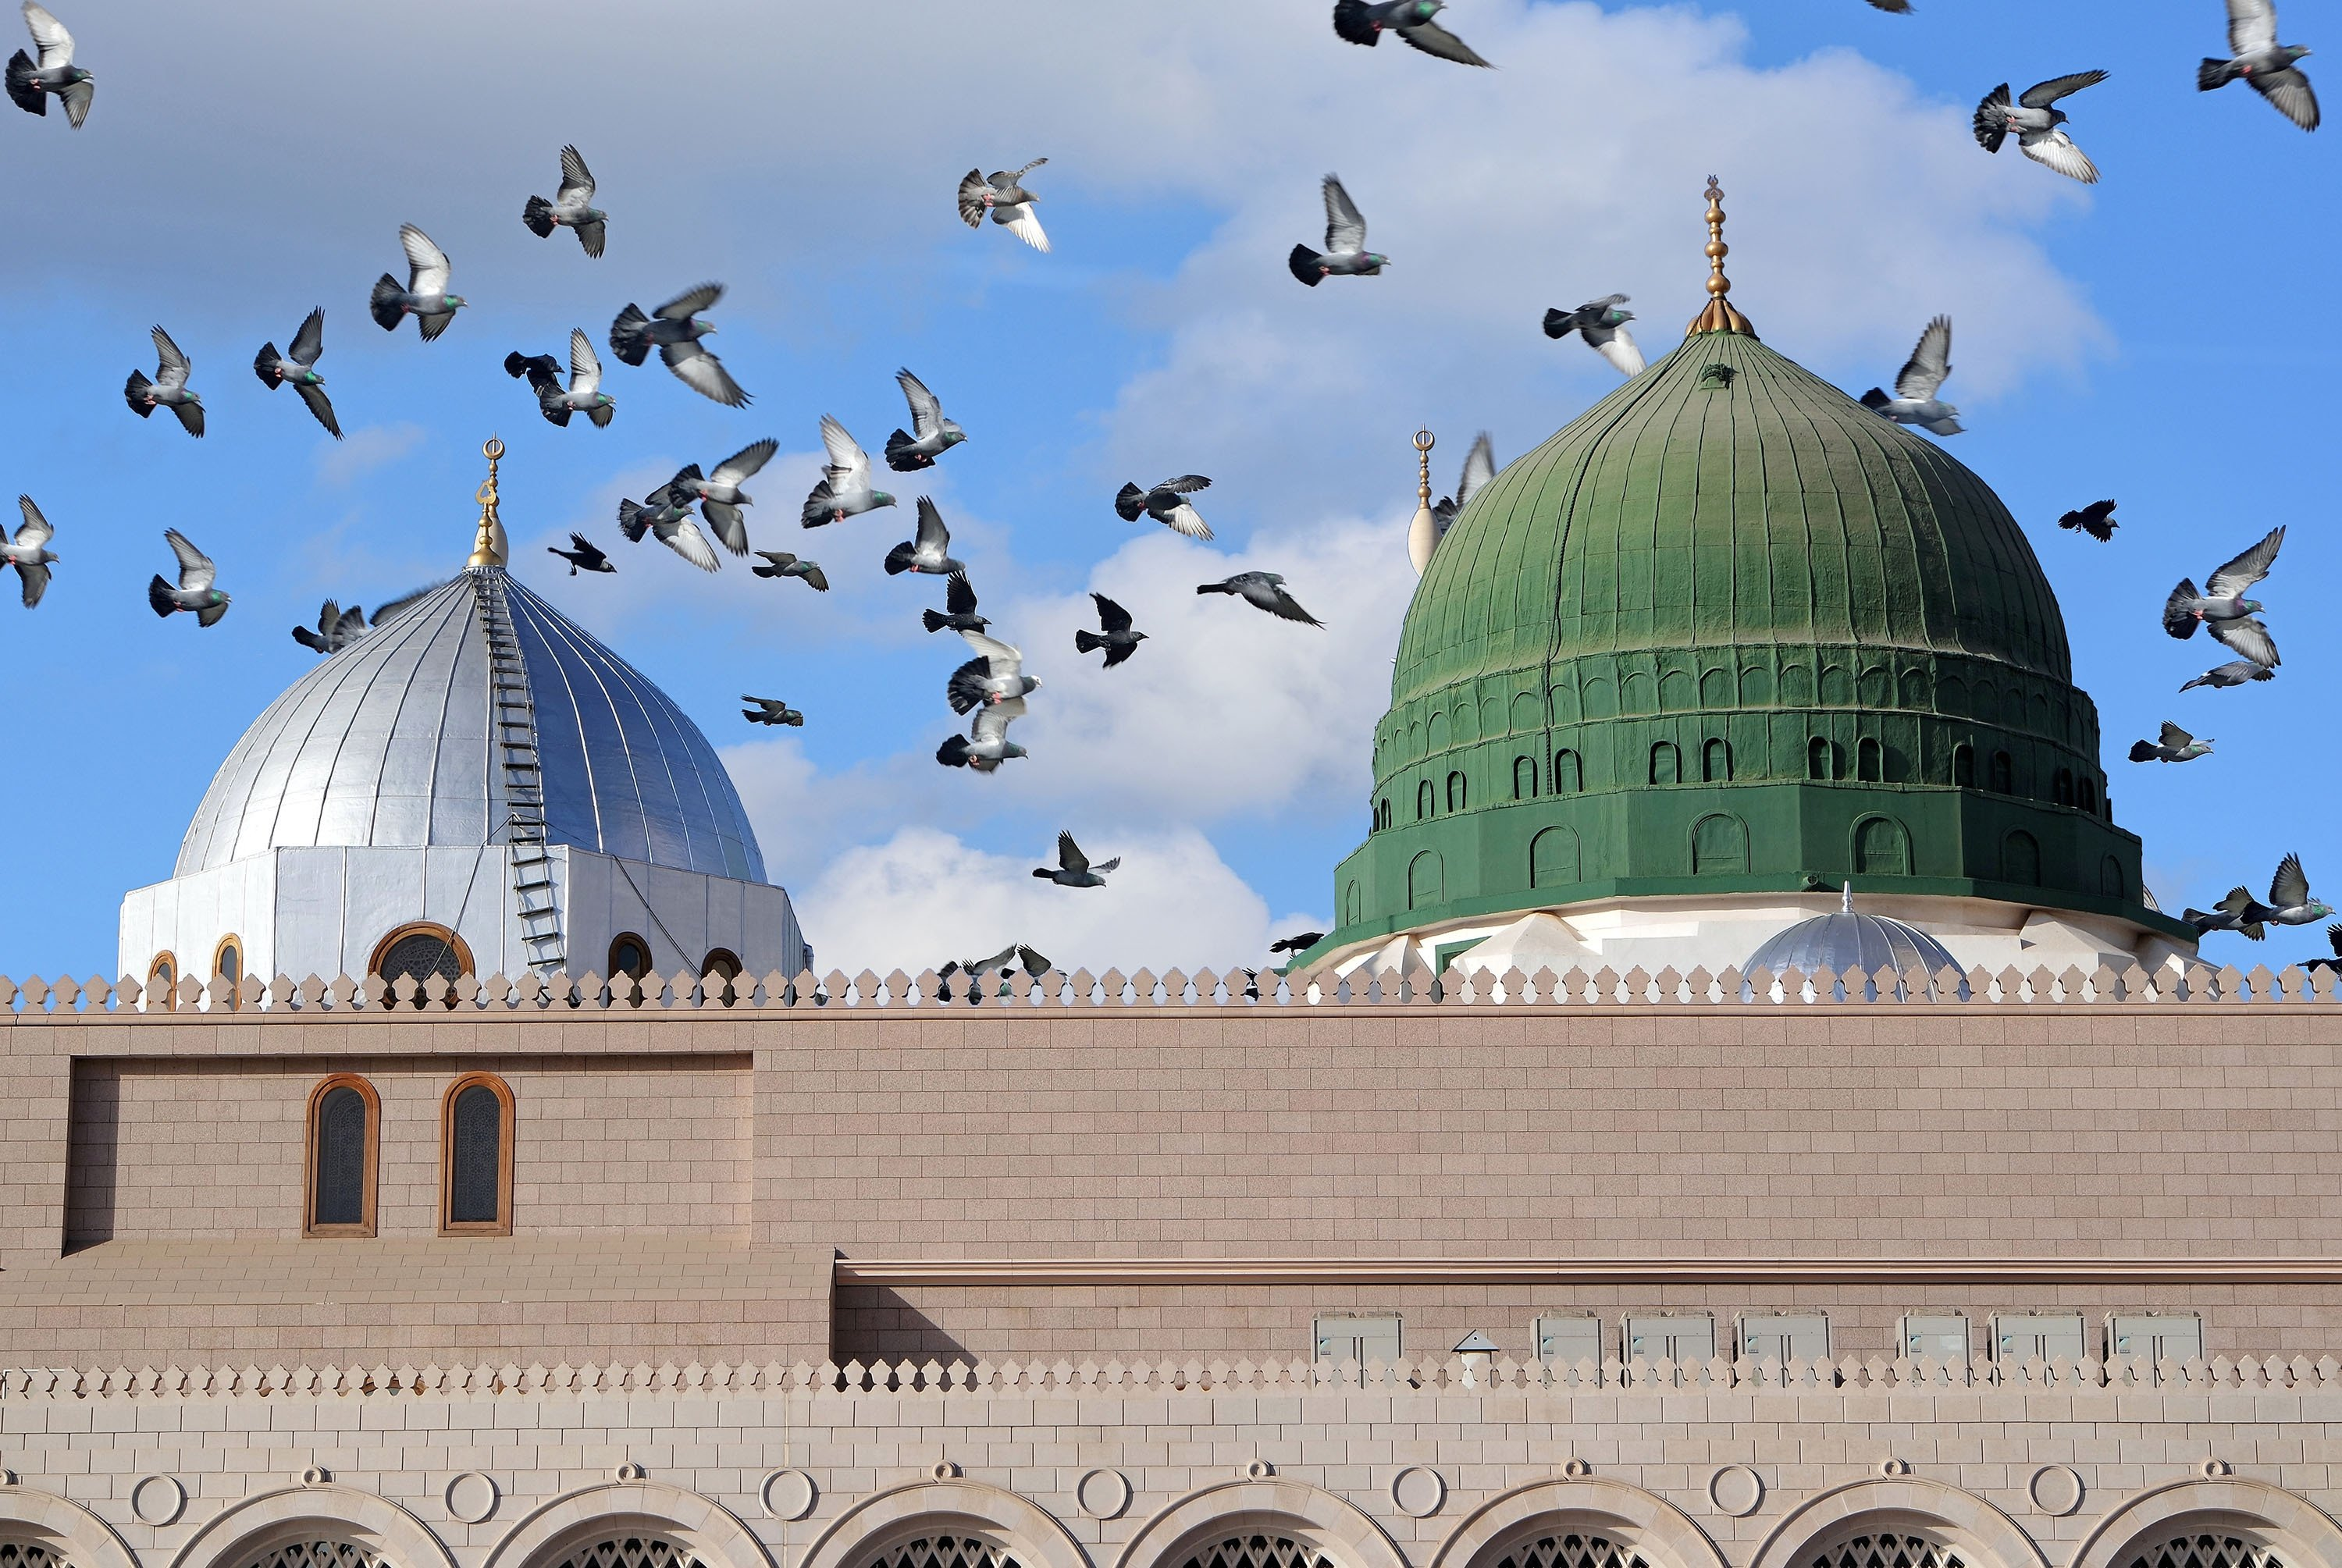 Pigeons fly over the Green Dome, a green-colored dome built above the tomb of the Prophet Muhammad,Medina, Saudi Arabia. (Shutterstock Photo)